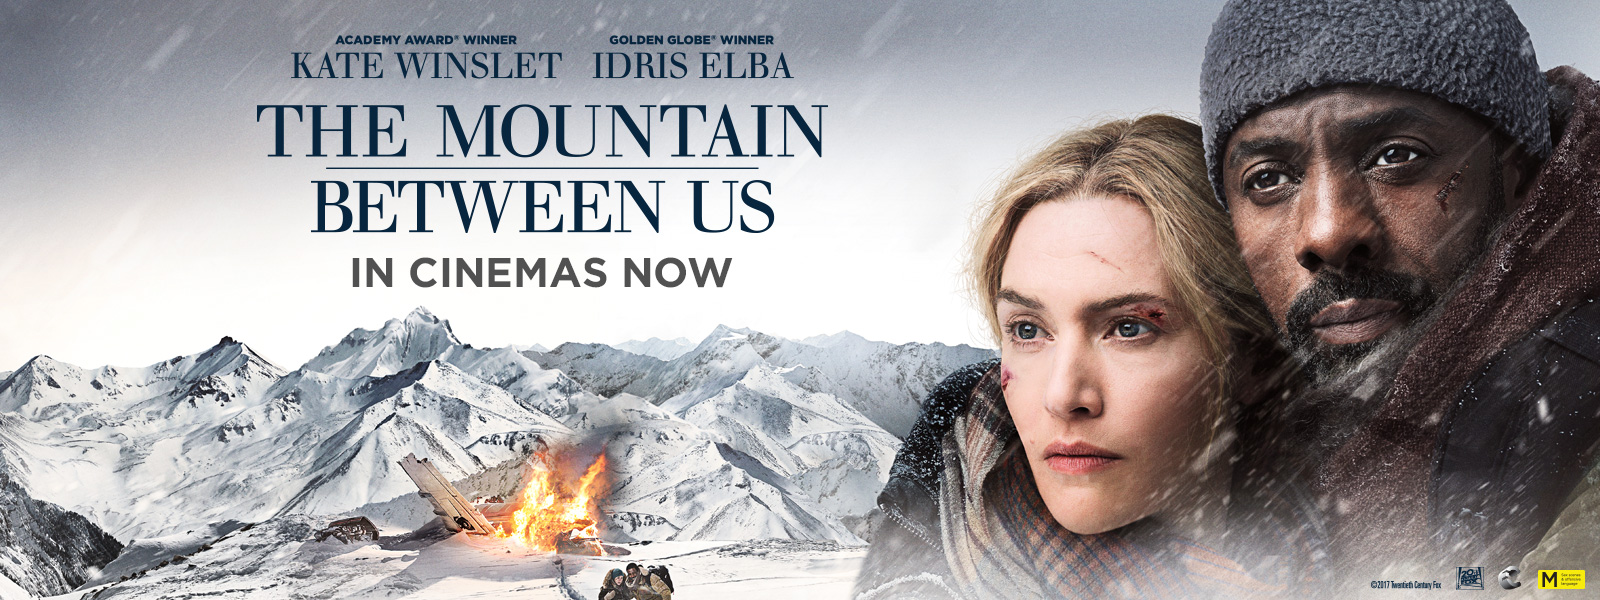 The Mountain Between Us - Marquee NEW In Cinemas Now